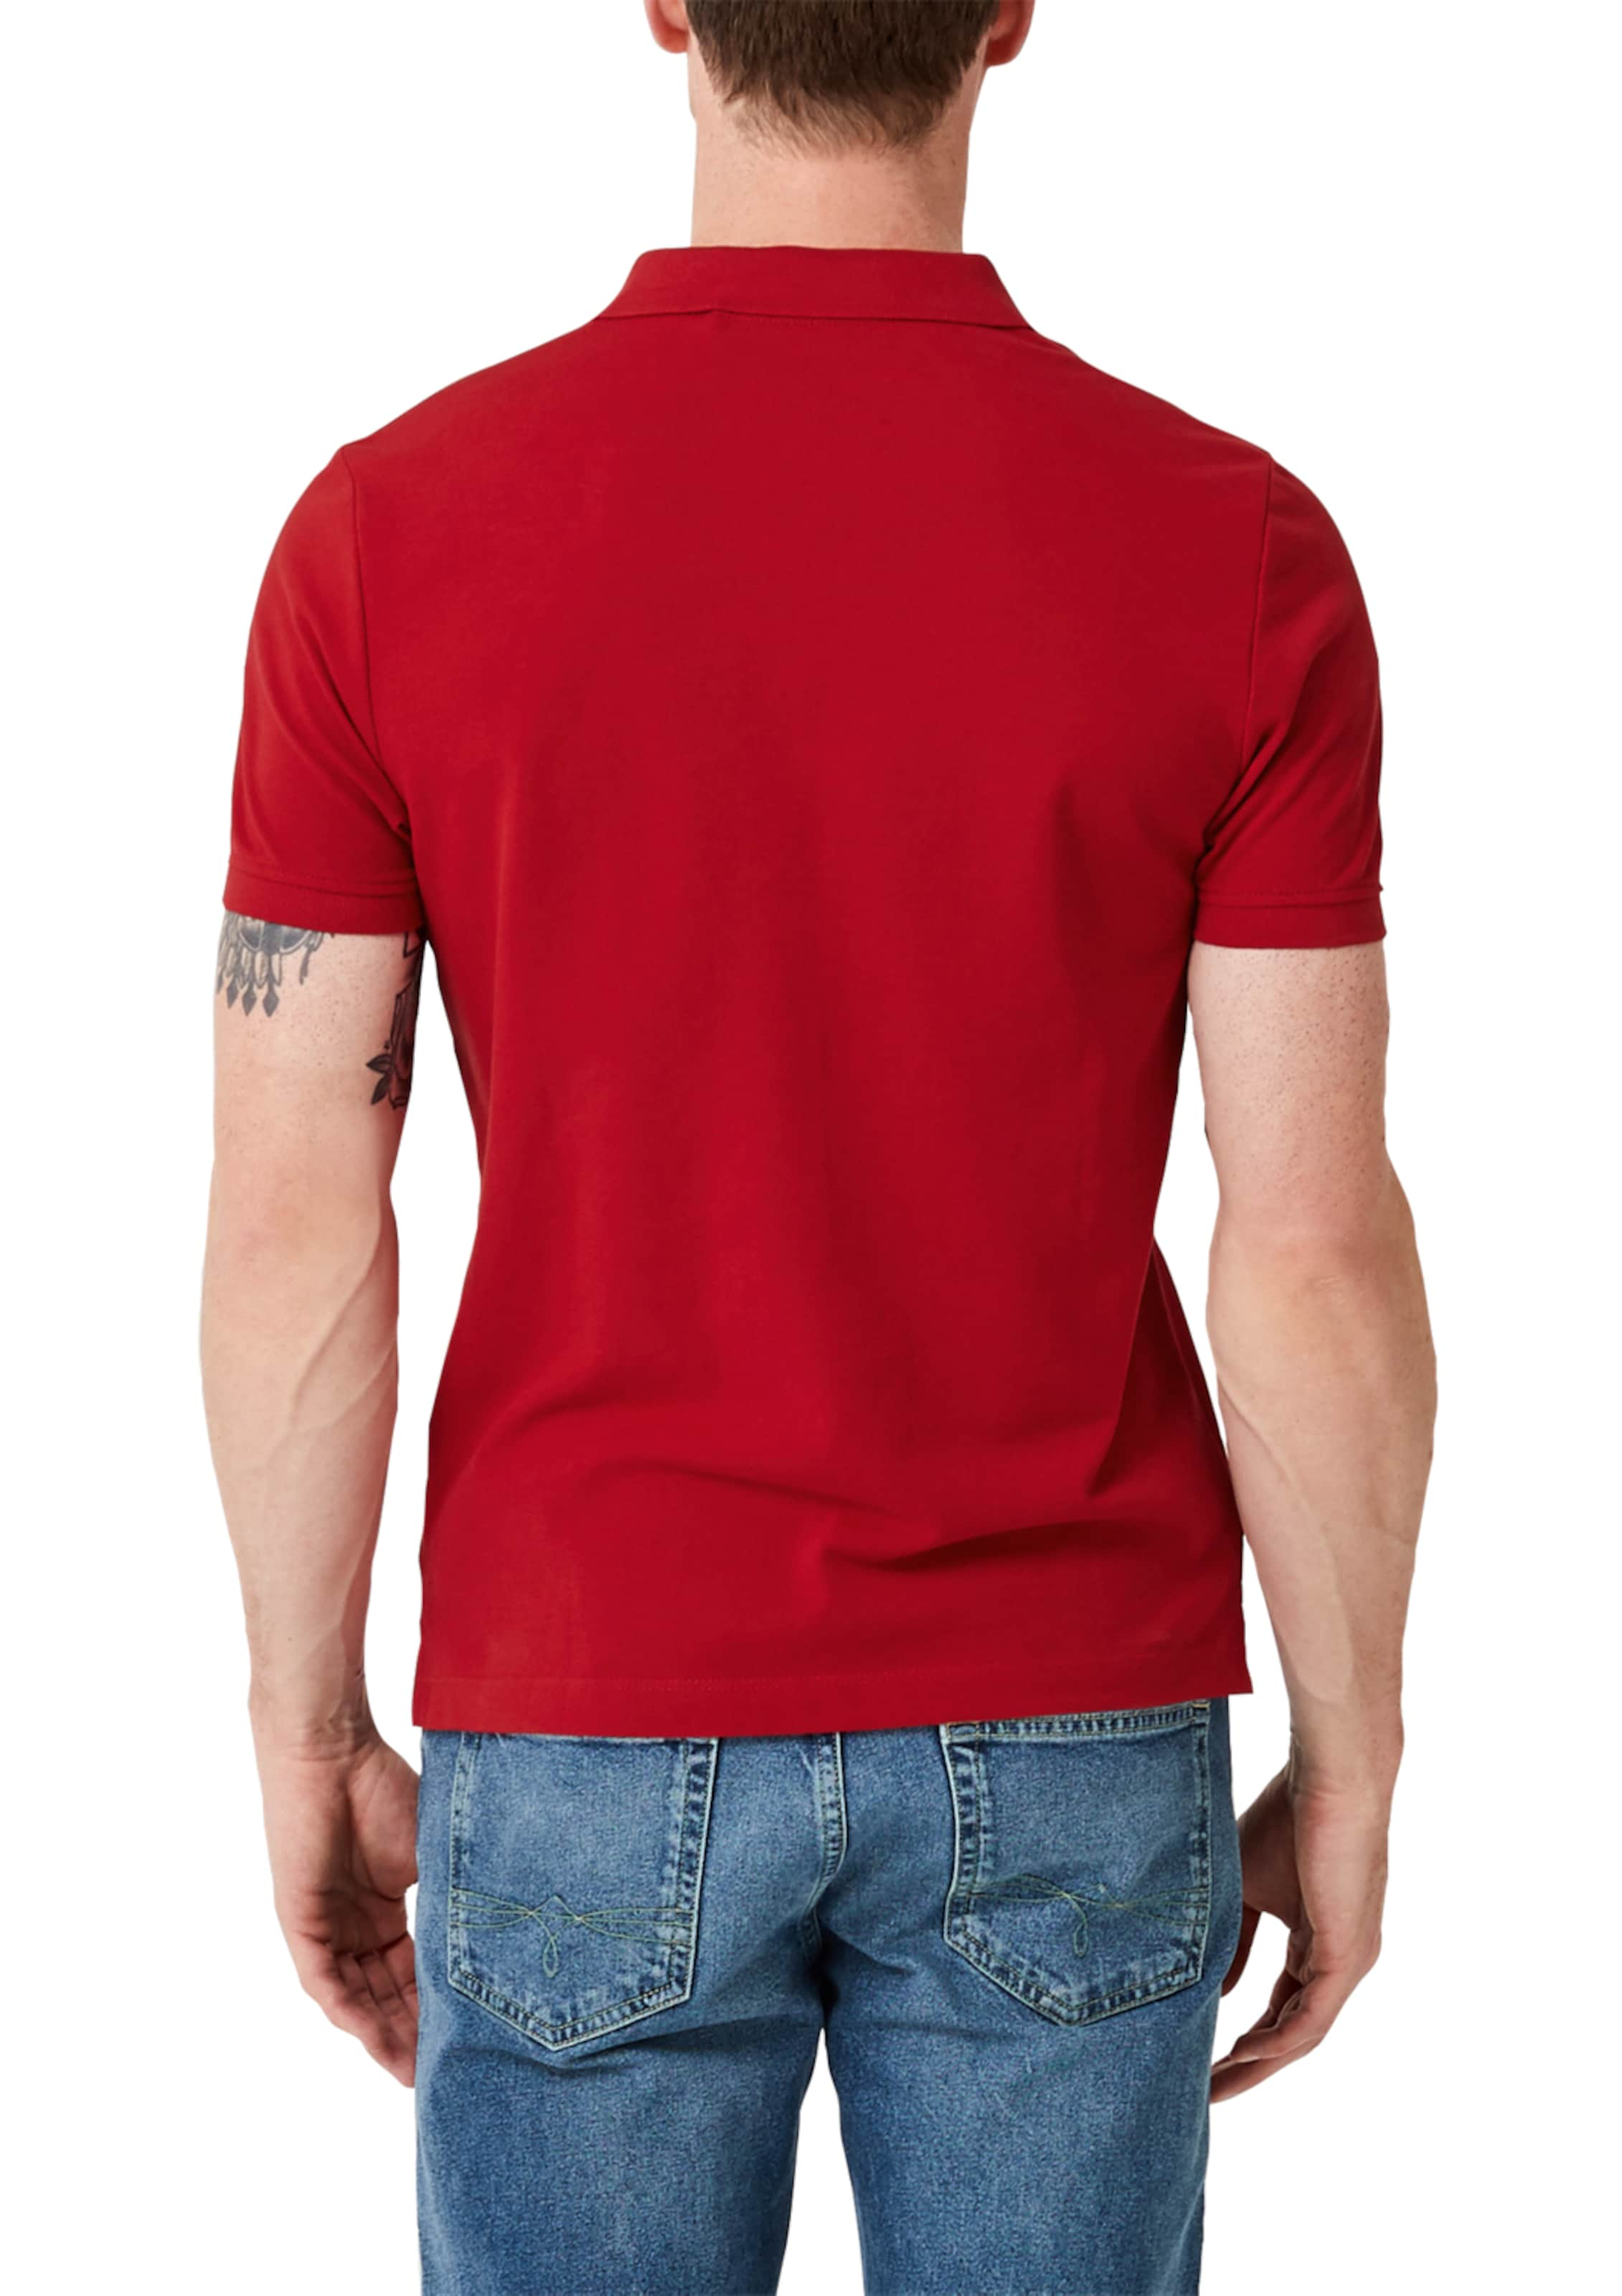 Poloshirt Rot Red S Label In oliver 3c54ARjqL